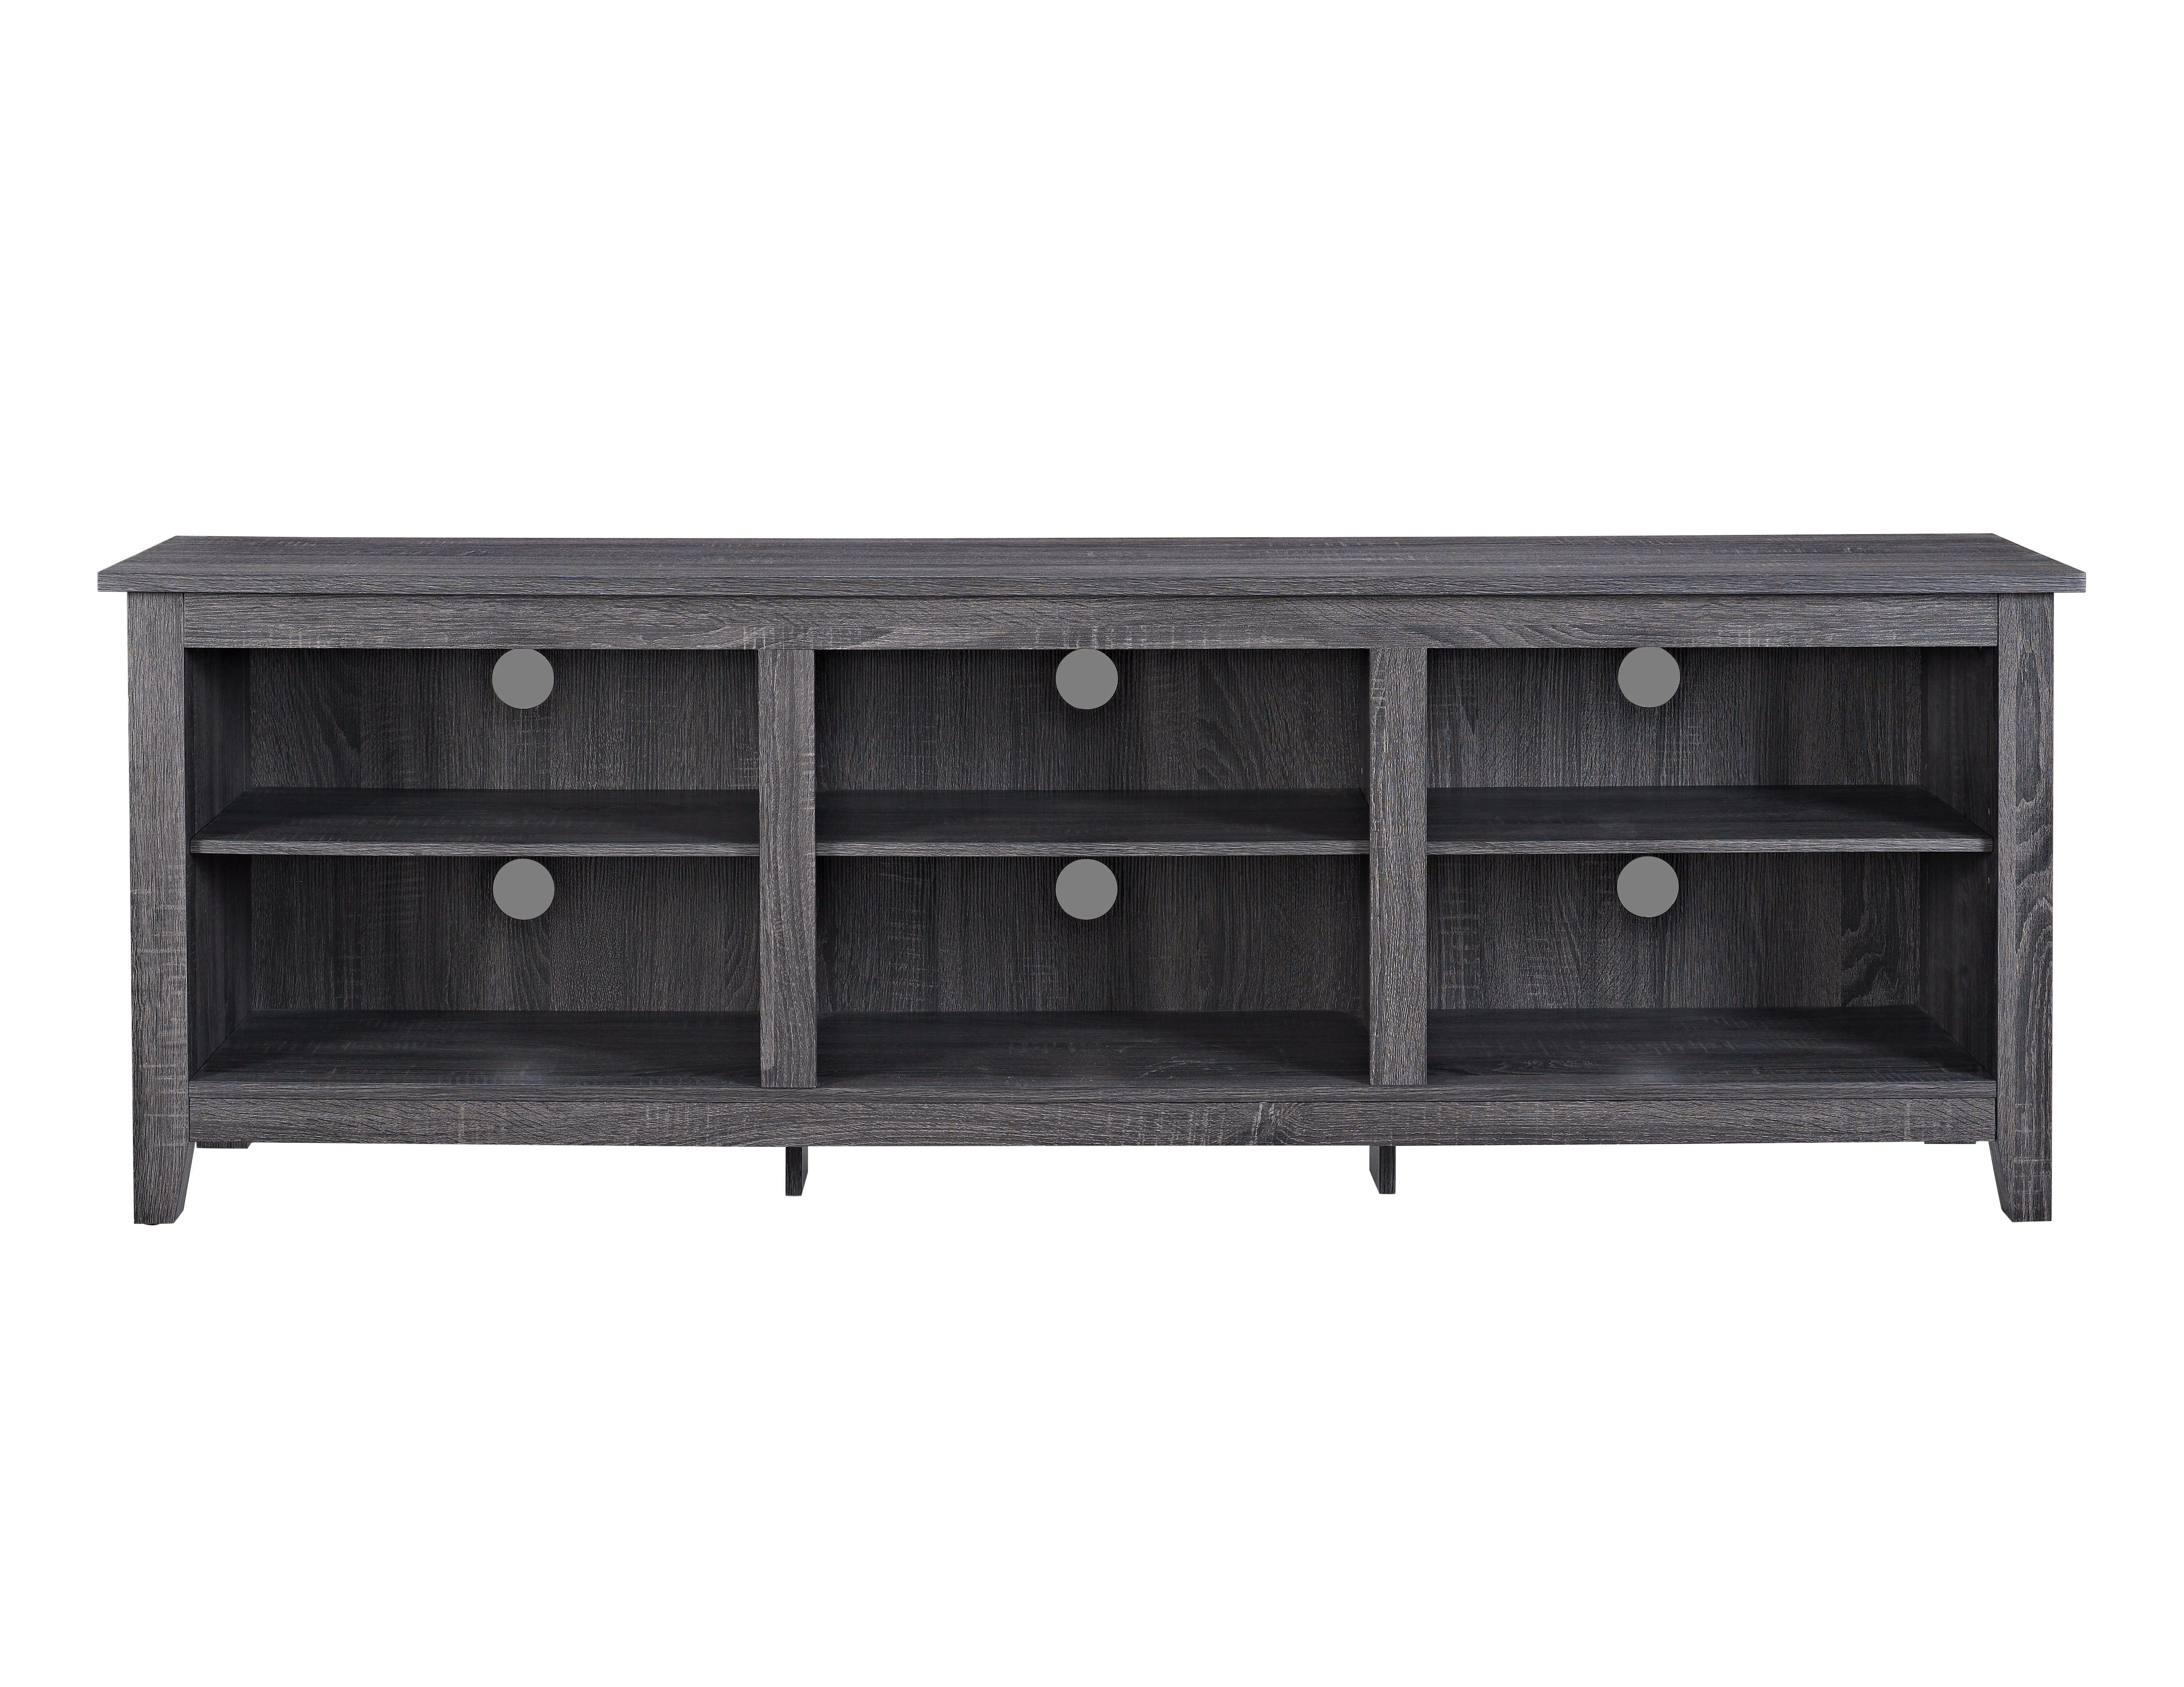 Modern 70 Inch Tv Stands + Entertainment Centers | Allmodern With Regard To Walton Grey 60 Inch Tv Stands (View 13 of 30)